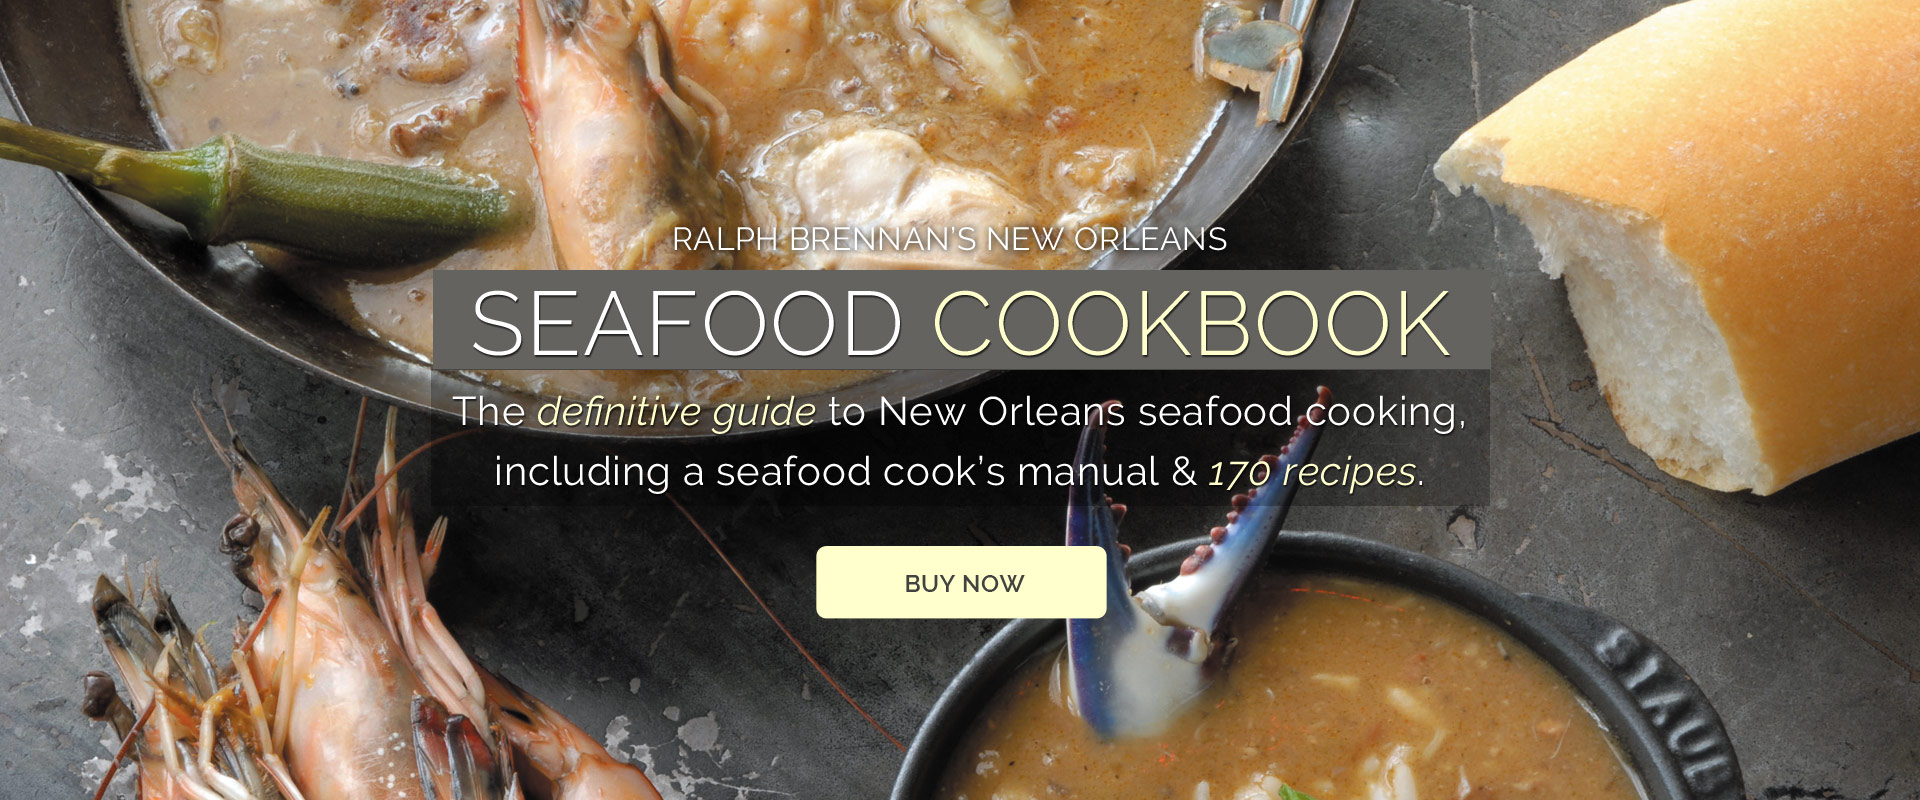 Ralph Brennan's New Orleans Seafood Cookbook.  The definitive guide to New Orleans seafood cooking, including a seafood cook's manual and 170 recipes.  Click to buy online.